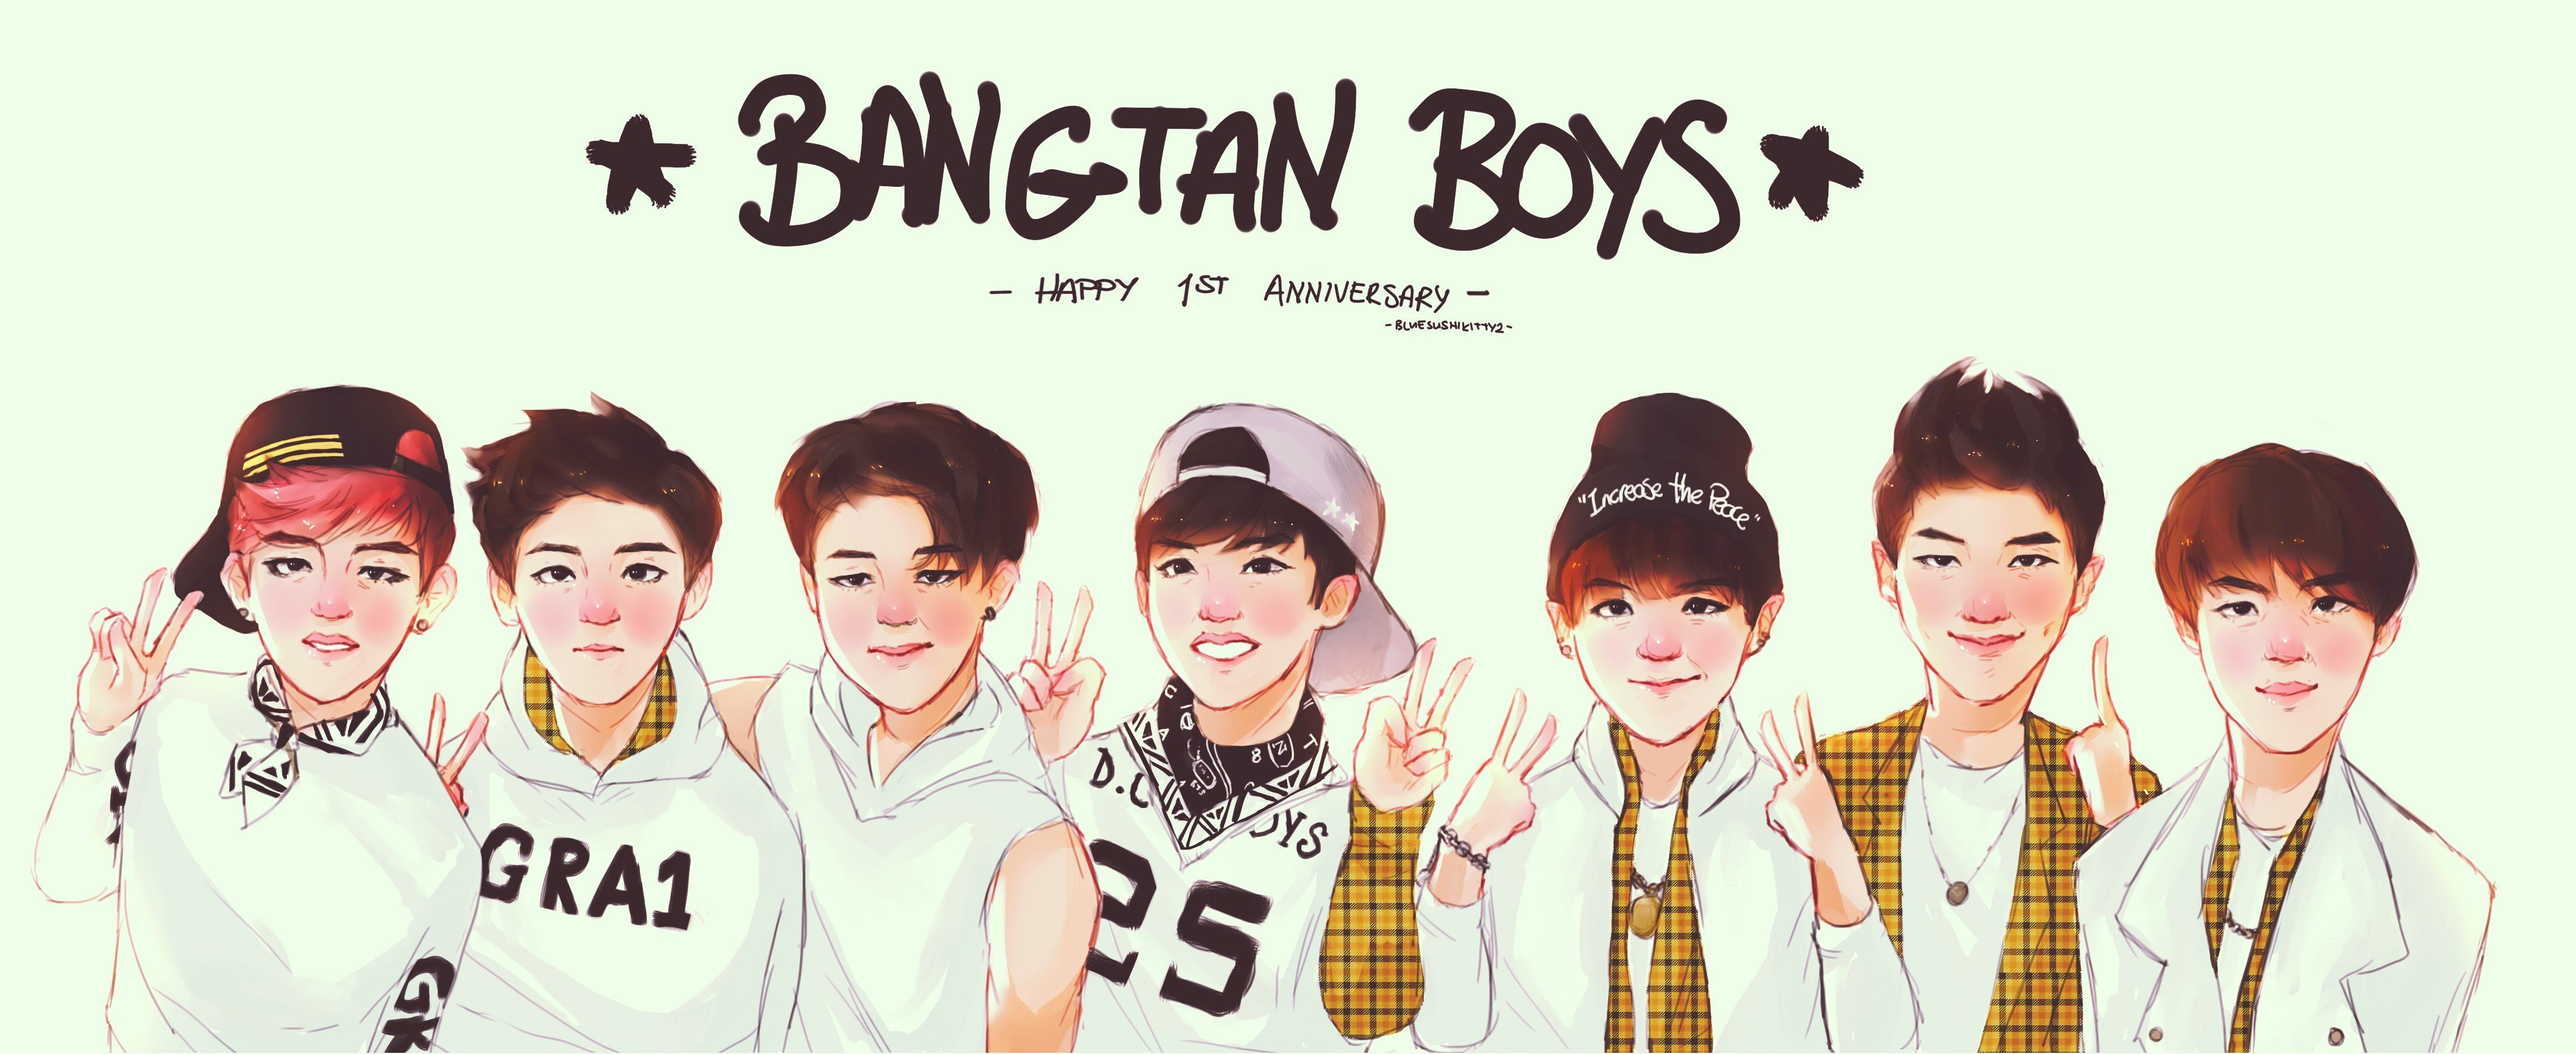 4400x1800 Nys952 Bts Wallpapers Bts Images In High Quality Wallpapers Web Bts Fanart Bts Laptop Wallpaper Bangtan Boys